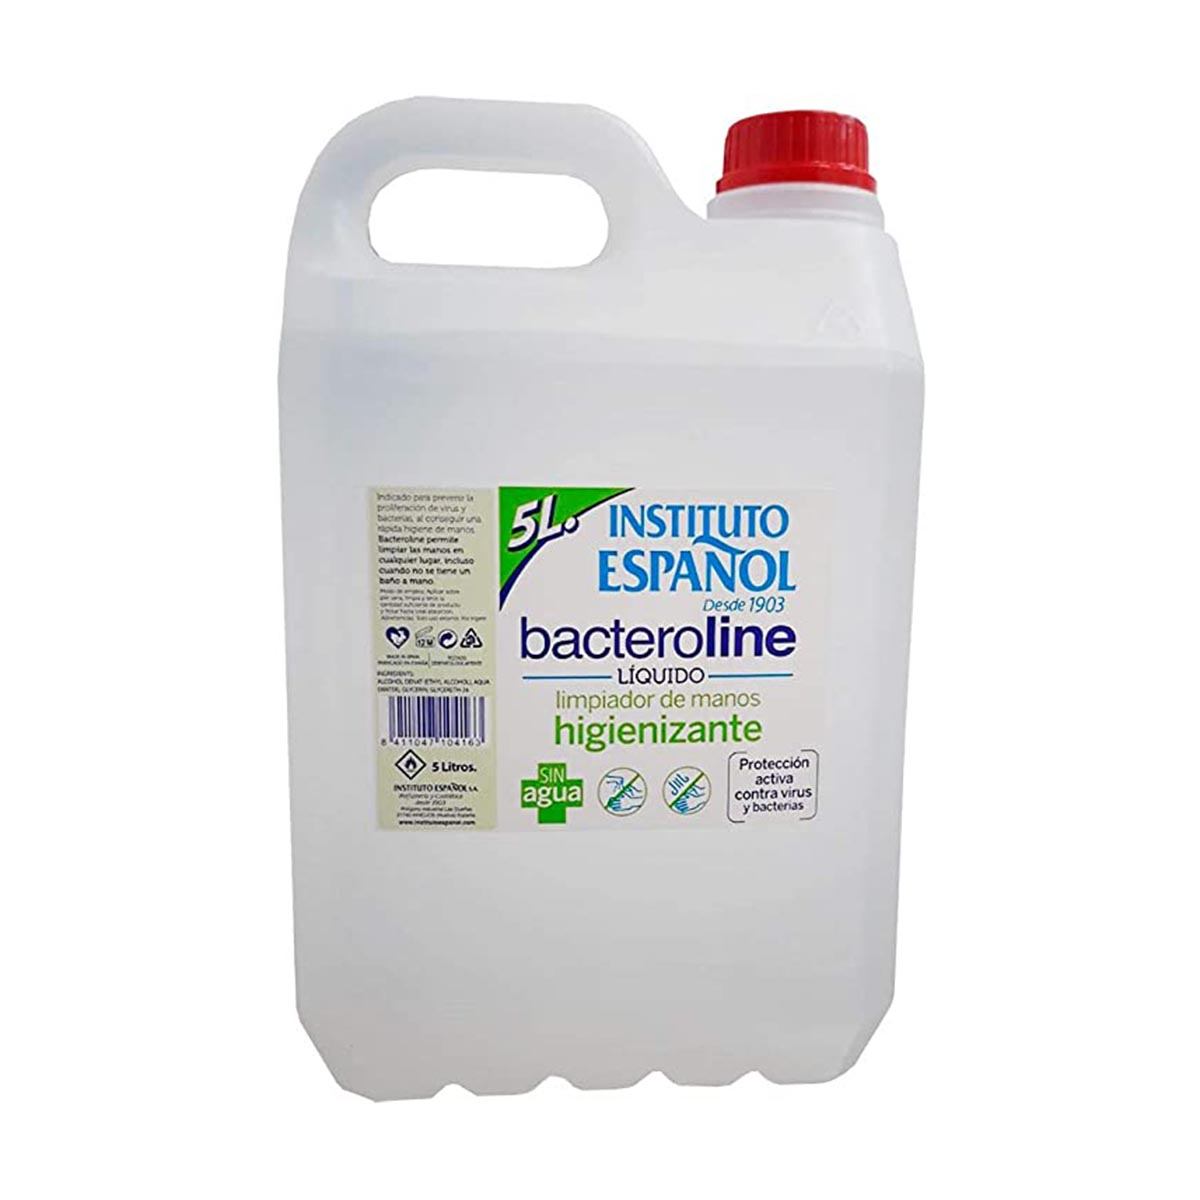 Instituto espa ol bacteroline gel de manos 5000ml